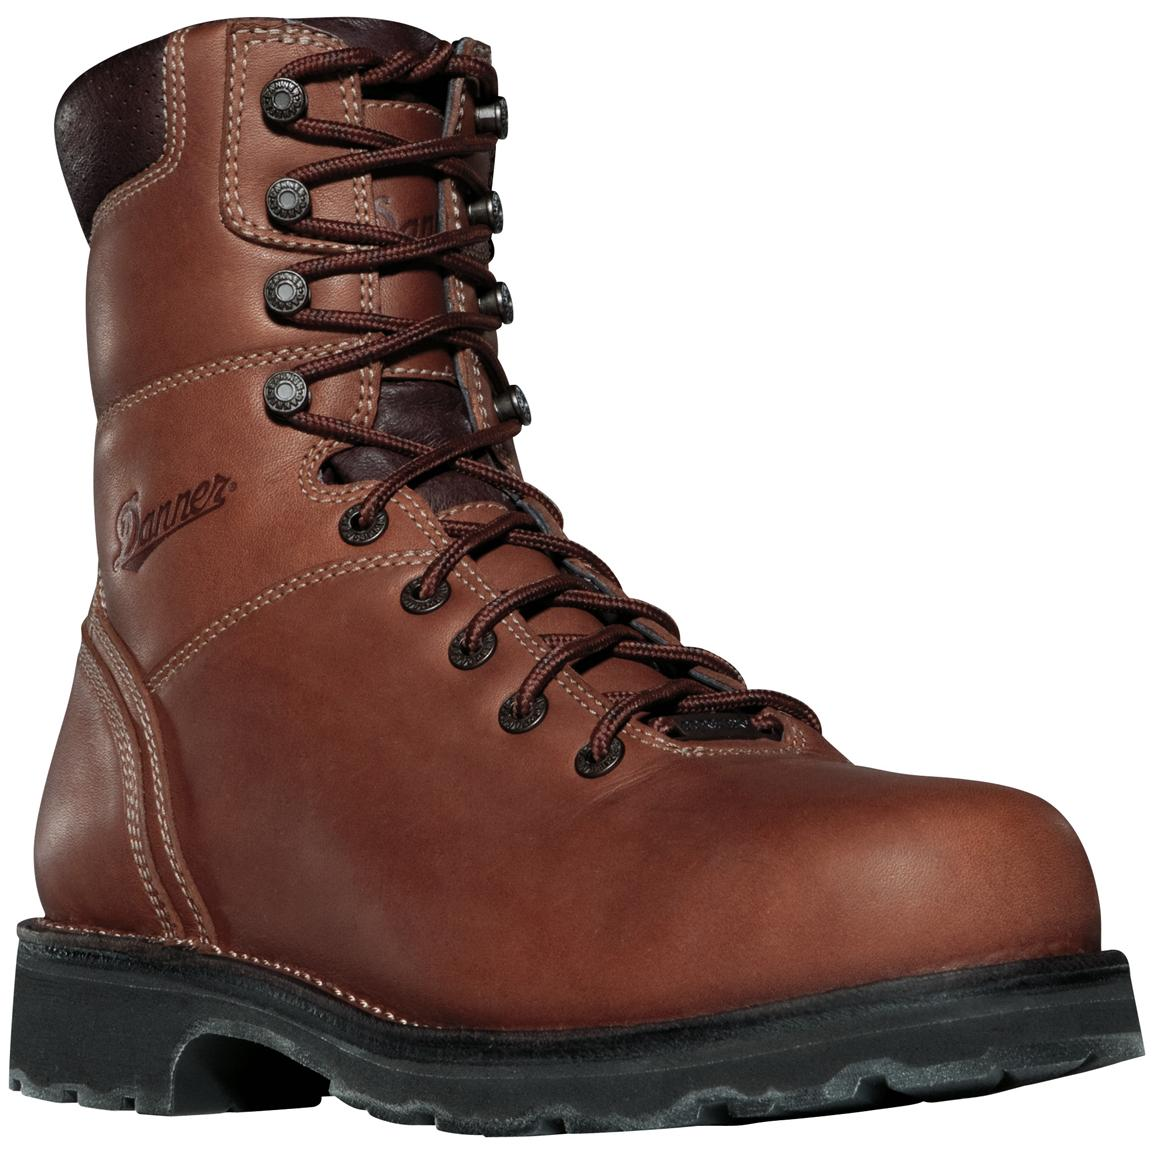 "Men's 8"" Danner® GORE-TEX® 400-gram Thinsulate™ Insulation Work Boots, Non-metallic Toe"